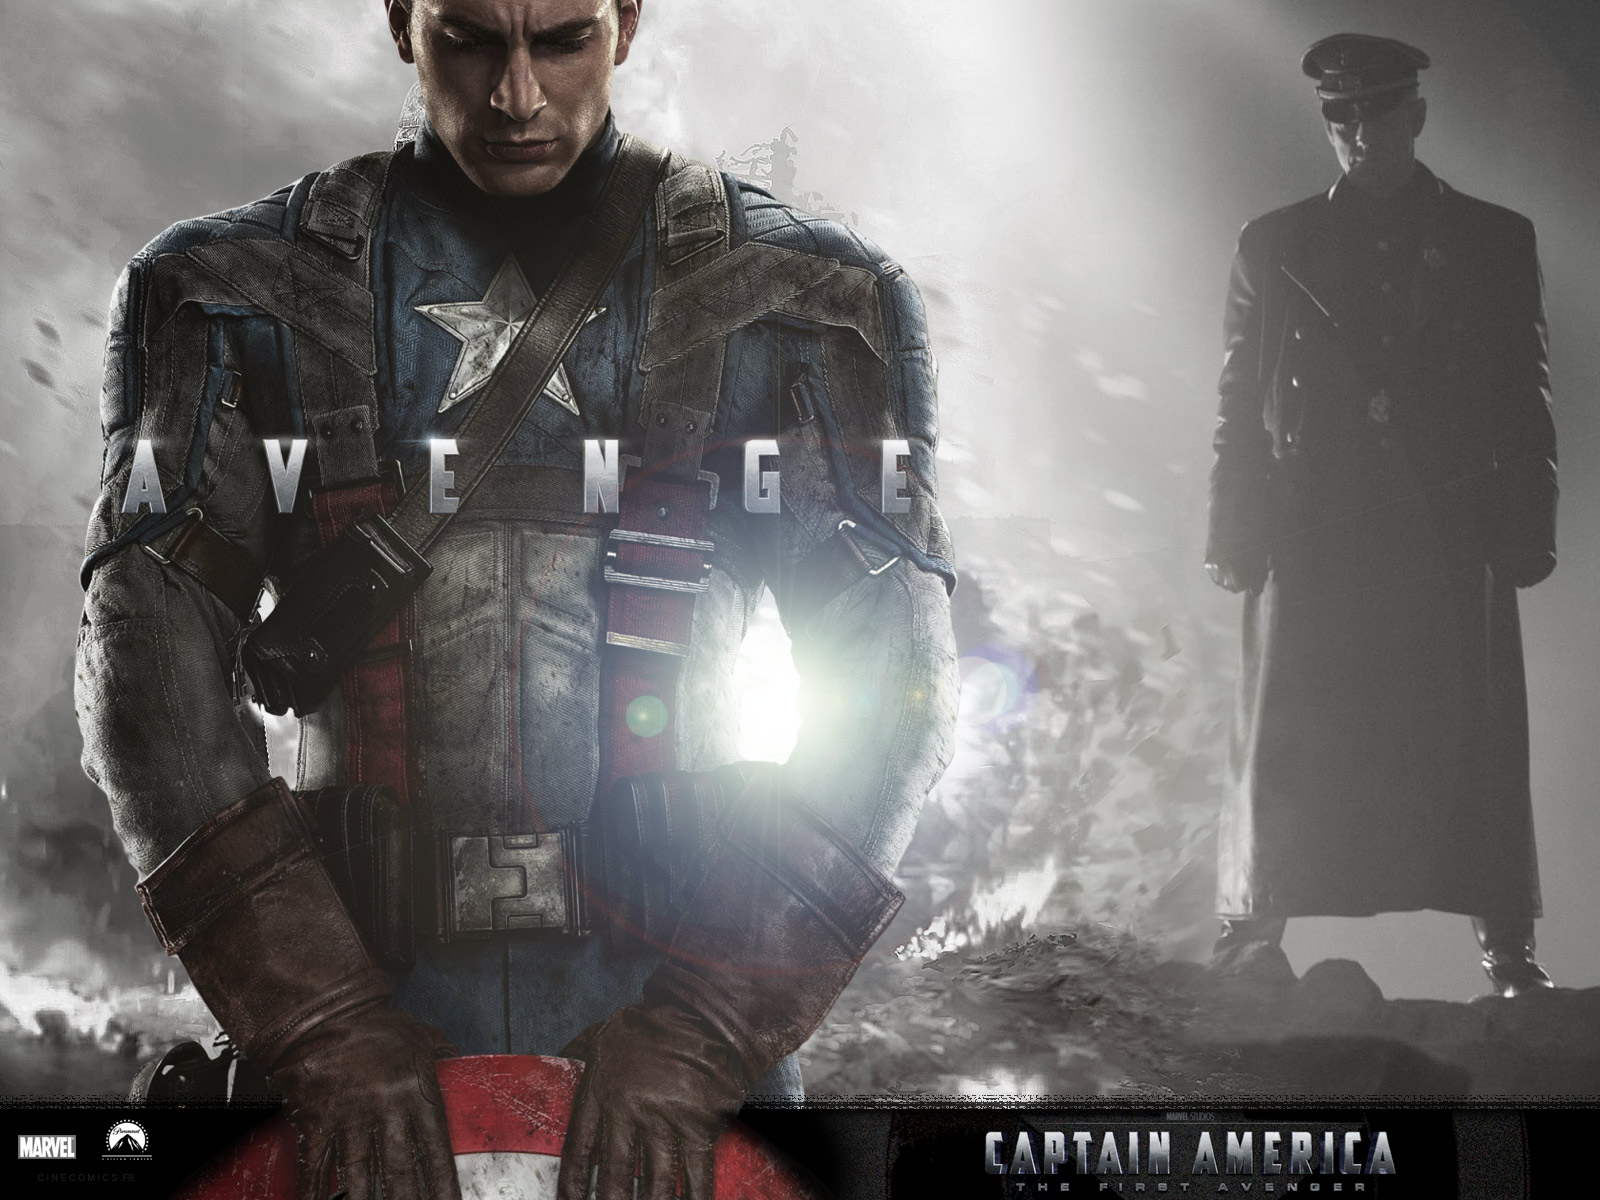 Captain America Movie Wallpapers HD Wallpapers 1600x1200